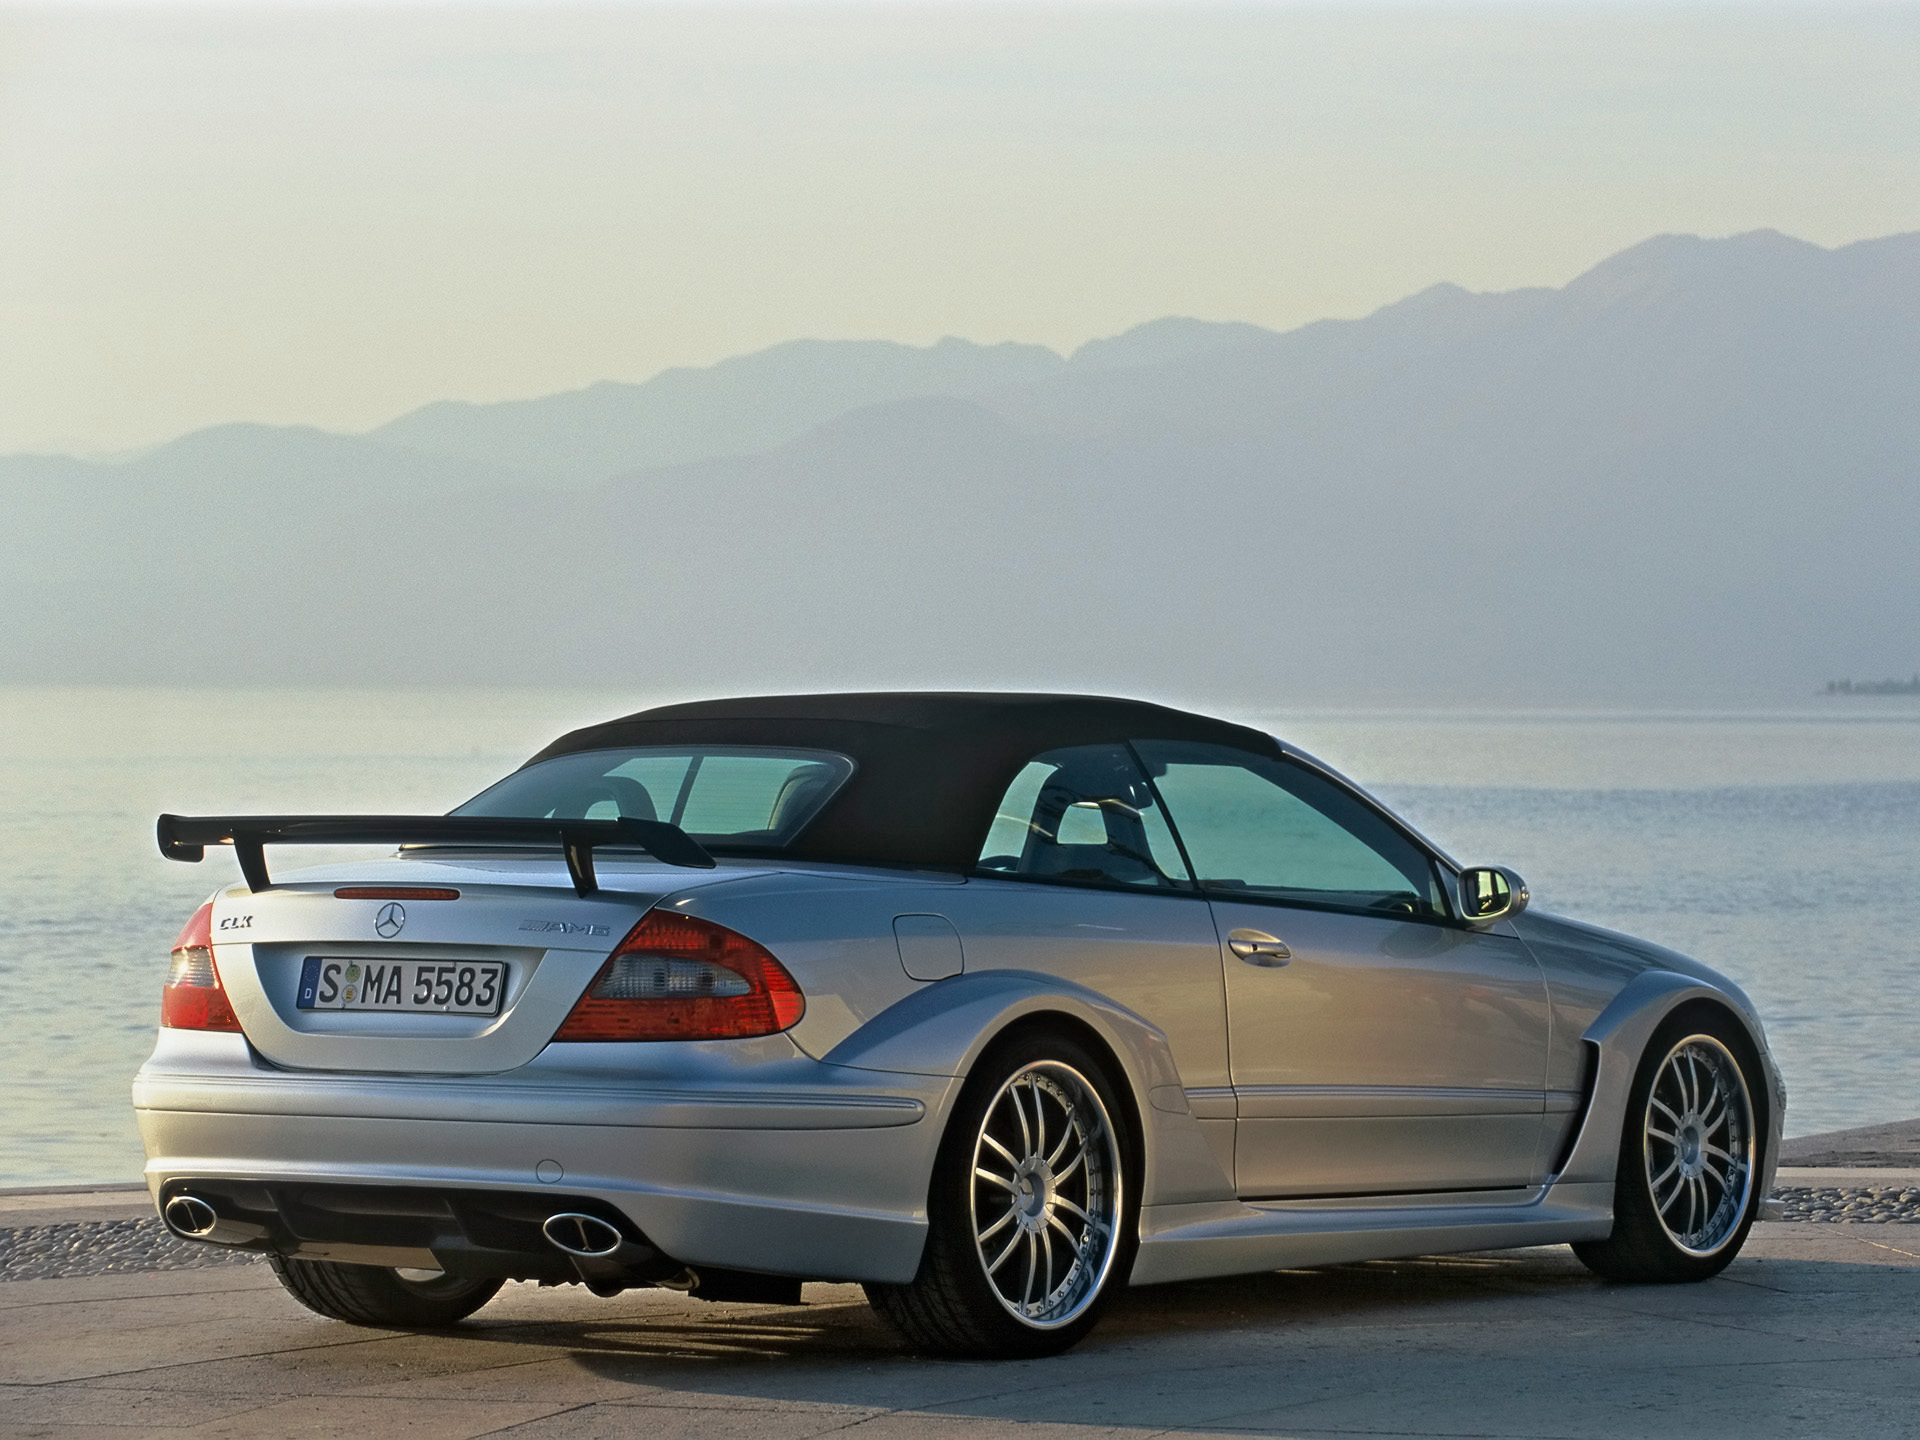 Mercedes-Benz CLK DTM AMG Cabriolet photo 10